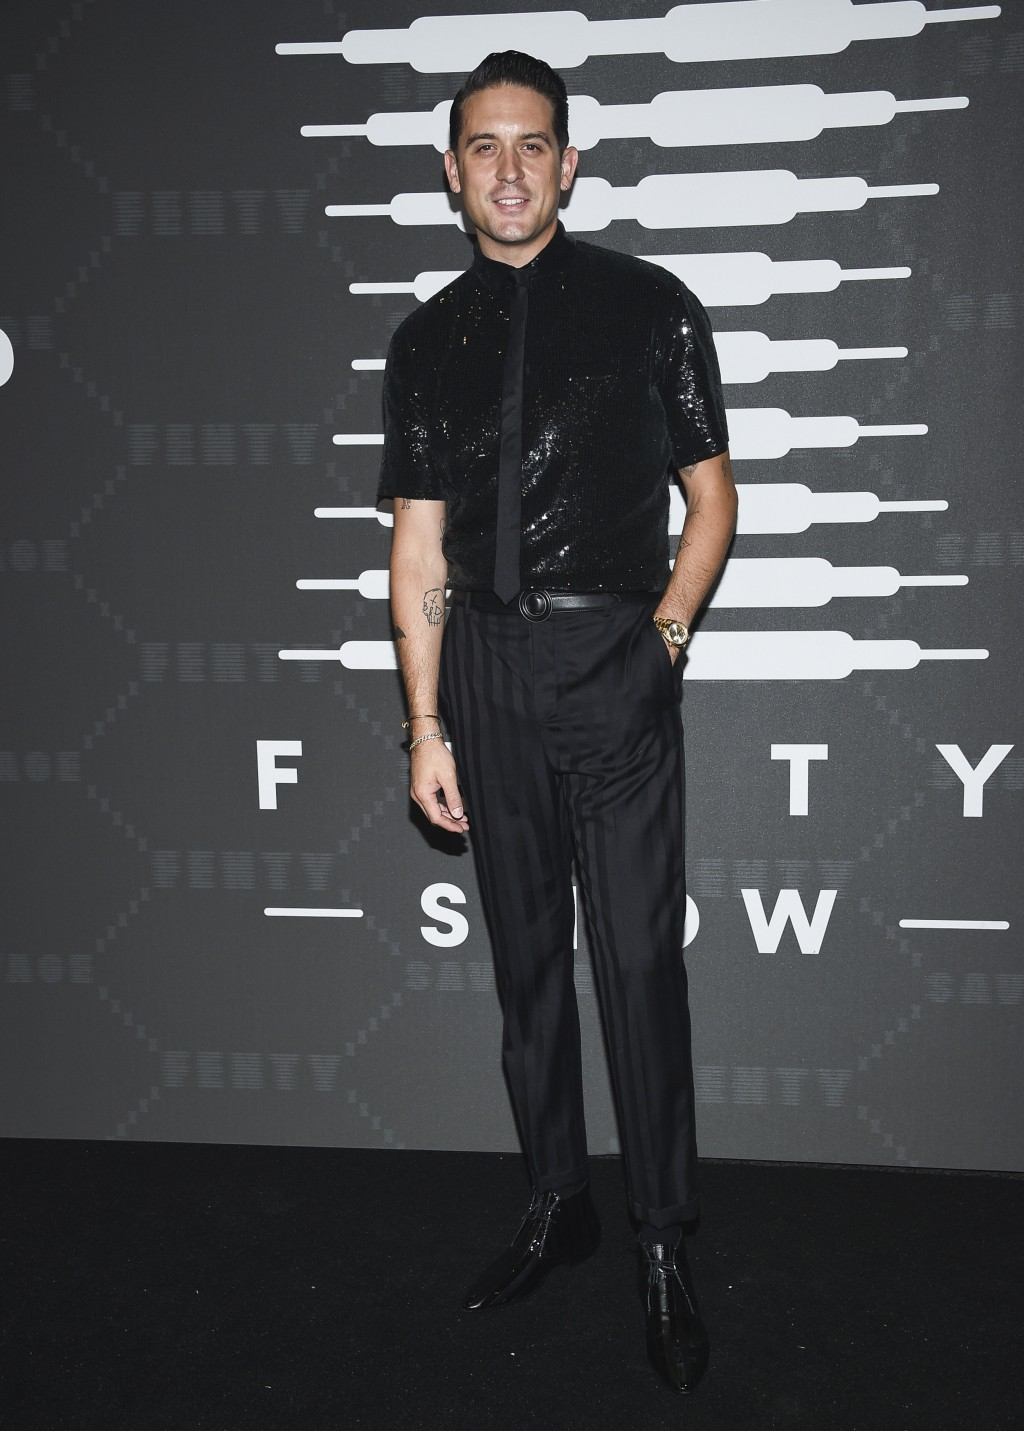 Rapper G-Eazy attends the Spring/Summer 2020 Savage X Fenty show, presented by Amazon Prime, at the Barclays Center on Tuesday, Sept, 10, 2019, in New...